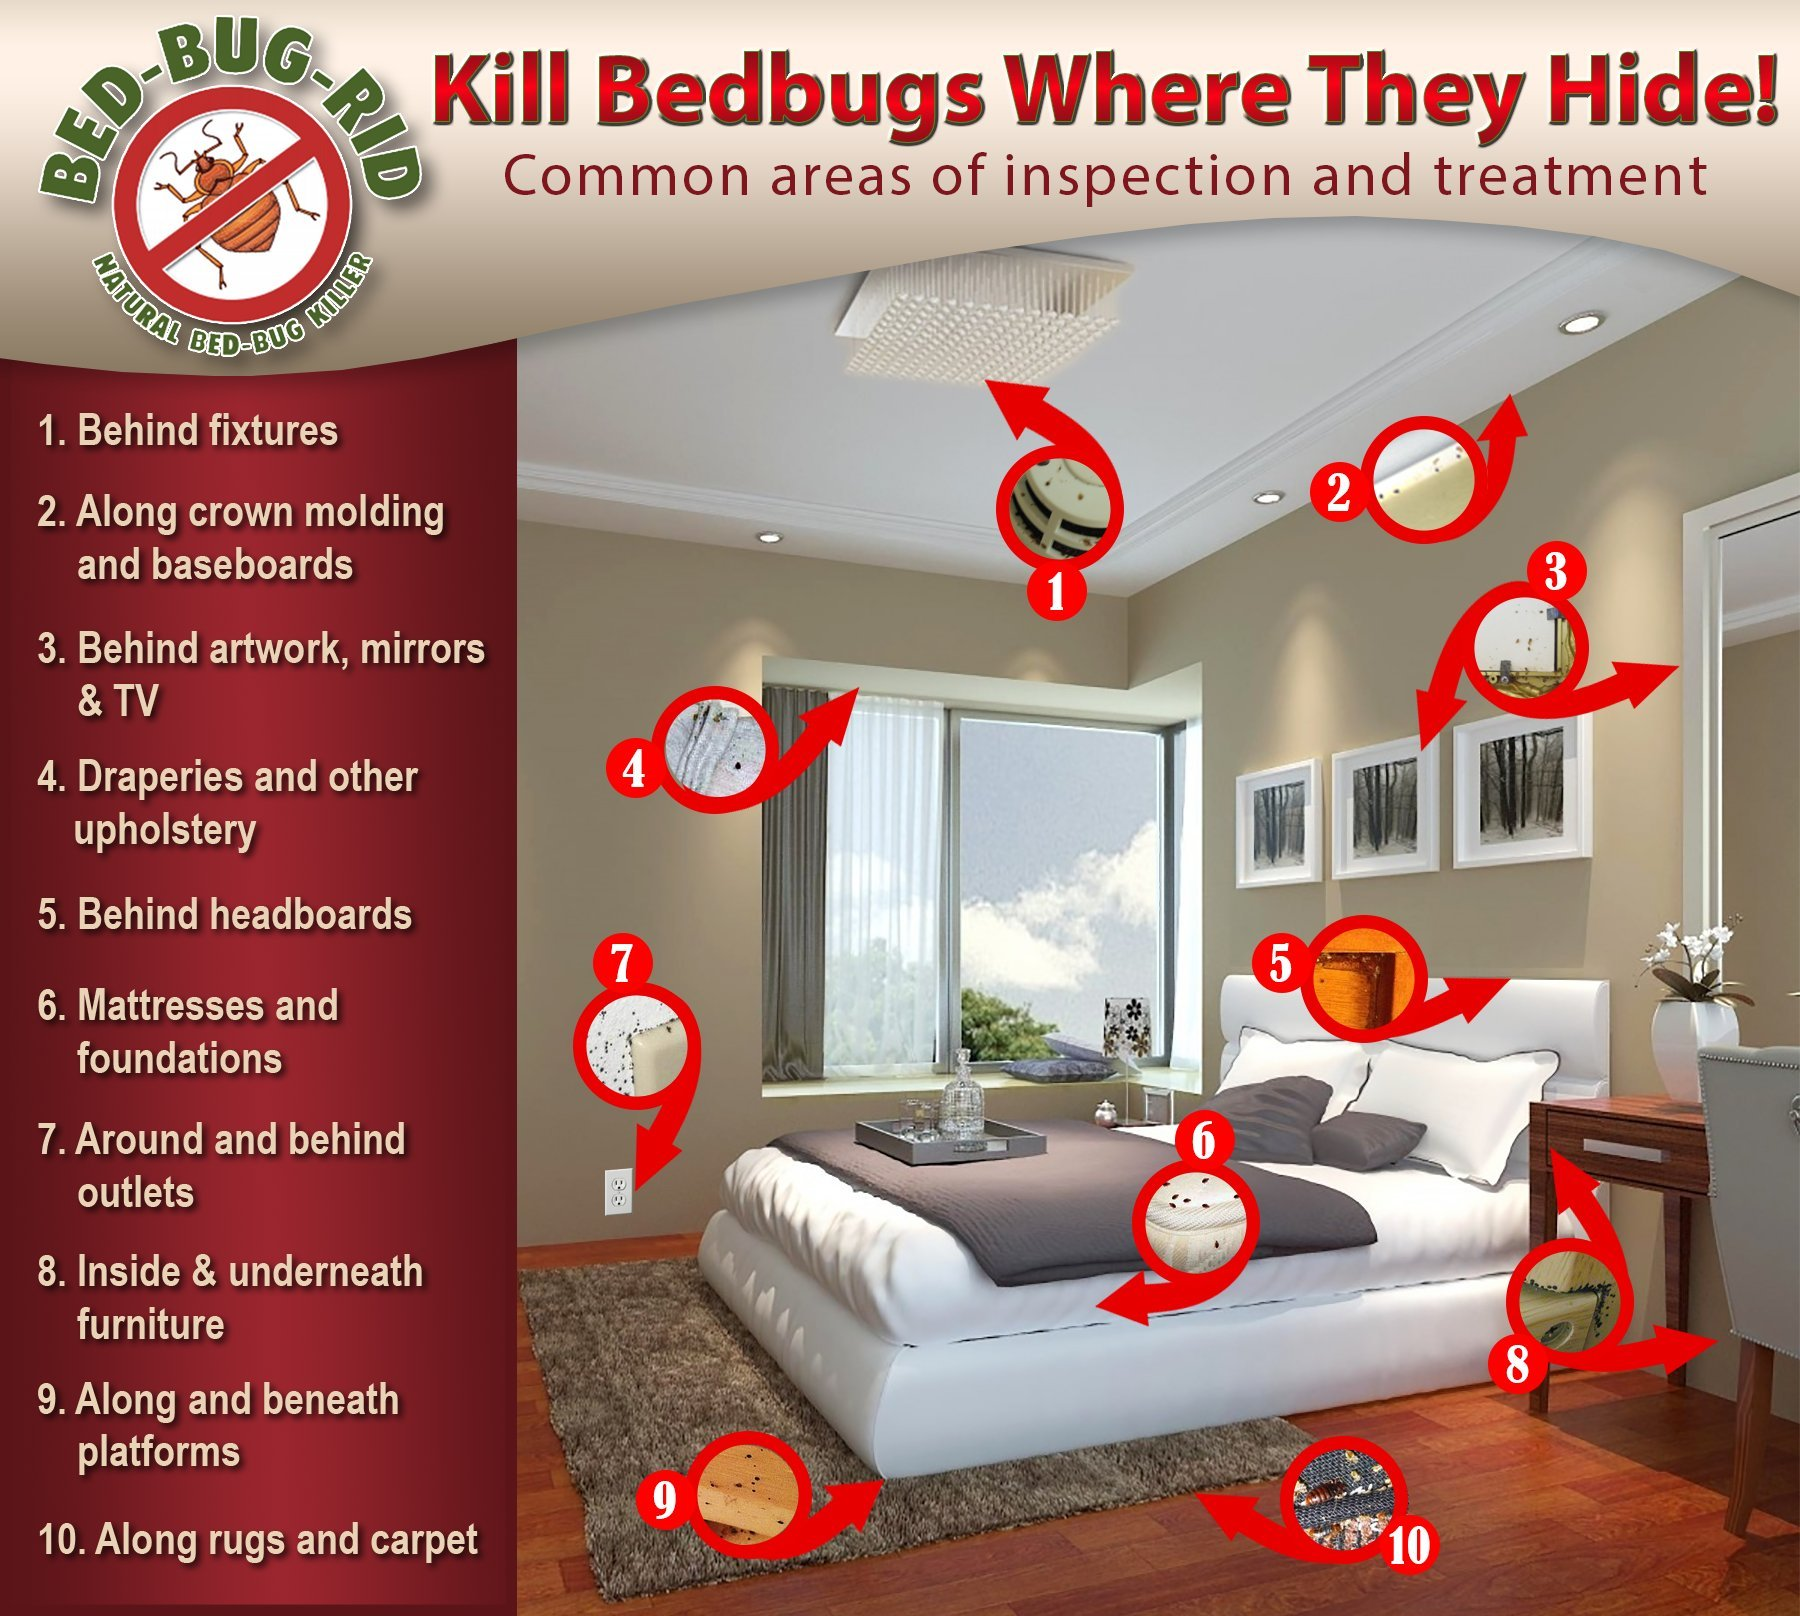 BED-BUG-RID Pest-Rid BBR3oz3pack Pest-Rid Travel 3 oz Size Manual Pest Spray Bottle (3 Pack) by BED-BUG-RID